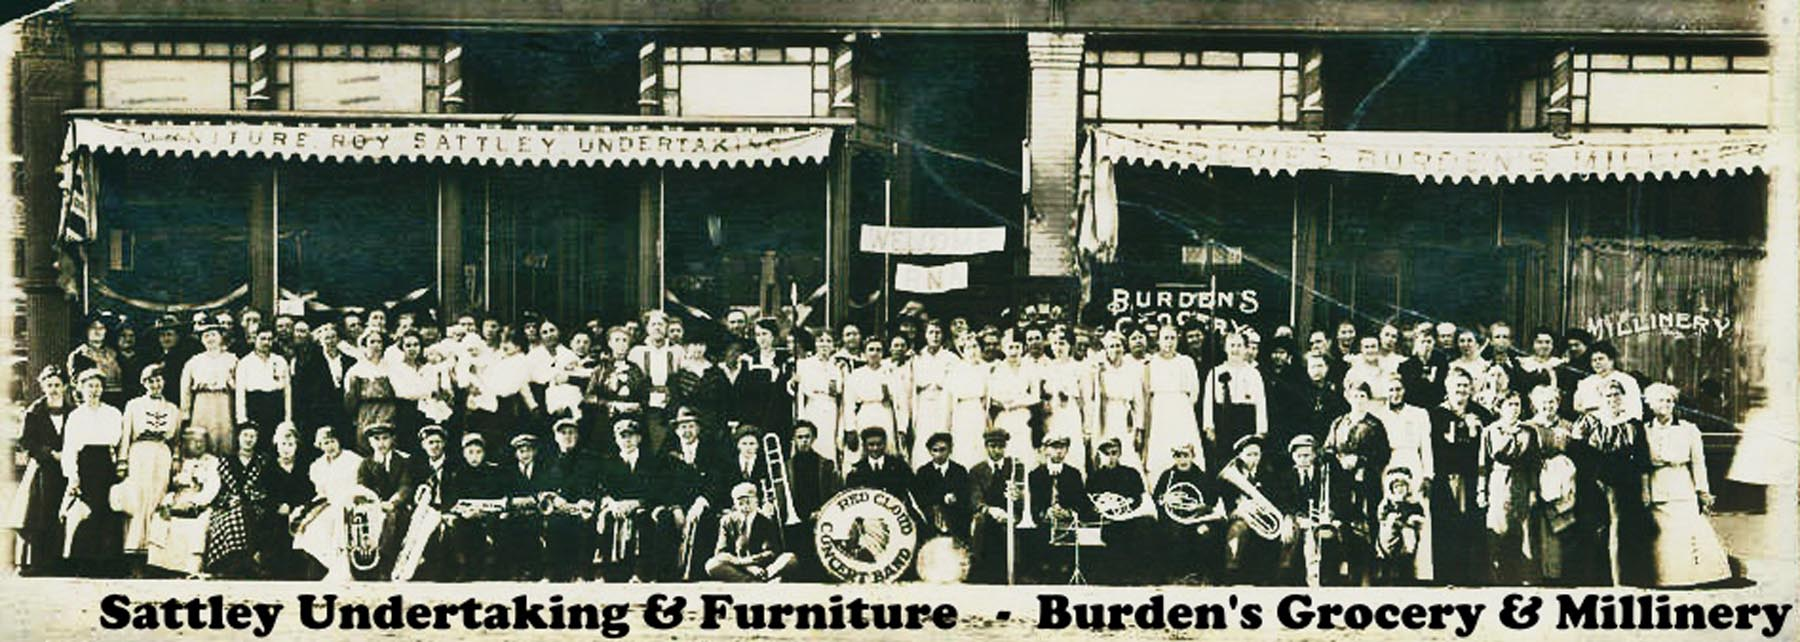 Band with crowd in front of Sattleys and Burdens-label